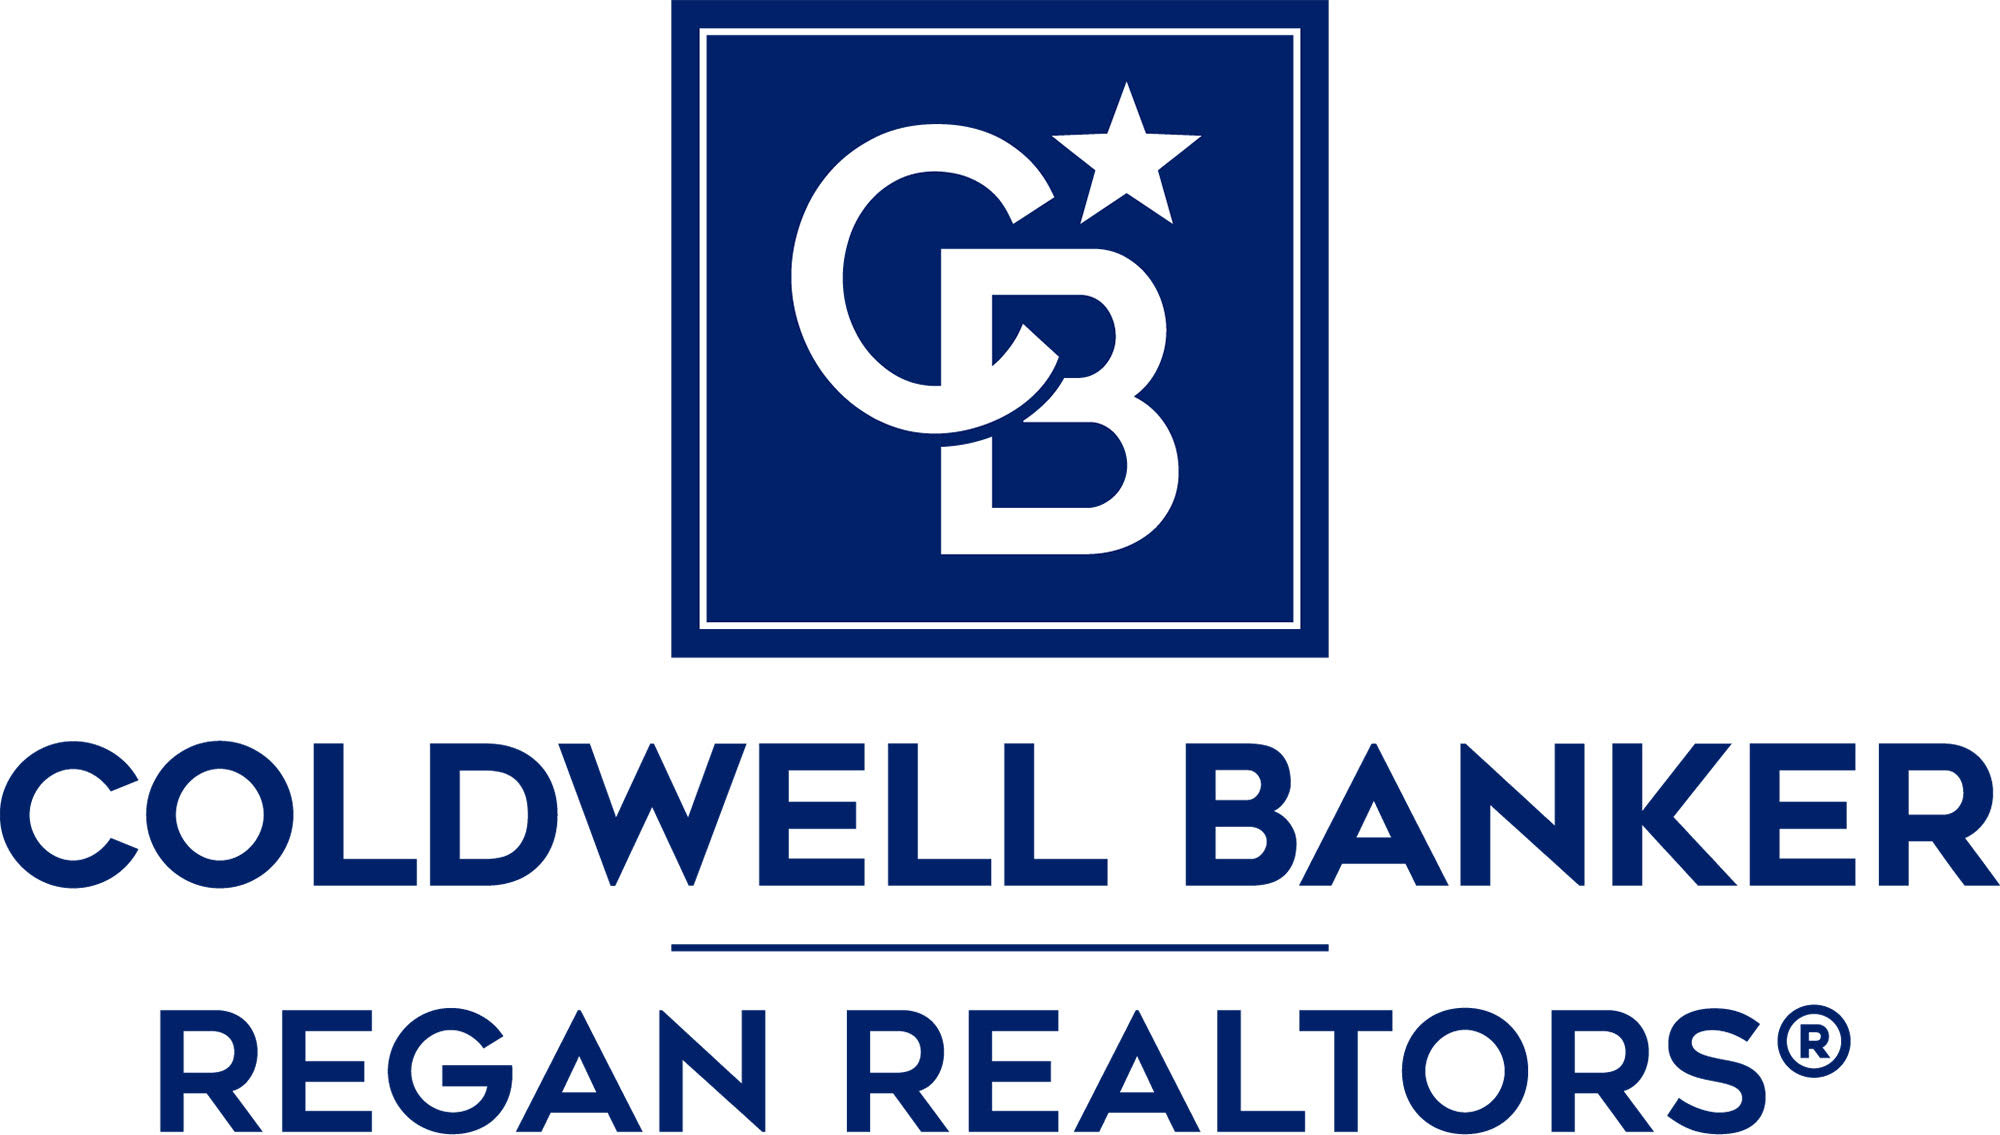 Mary Pat Owens - Coldwell Banker Regan